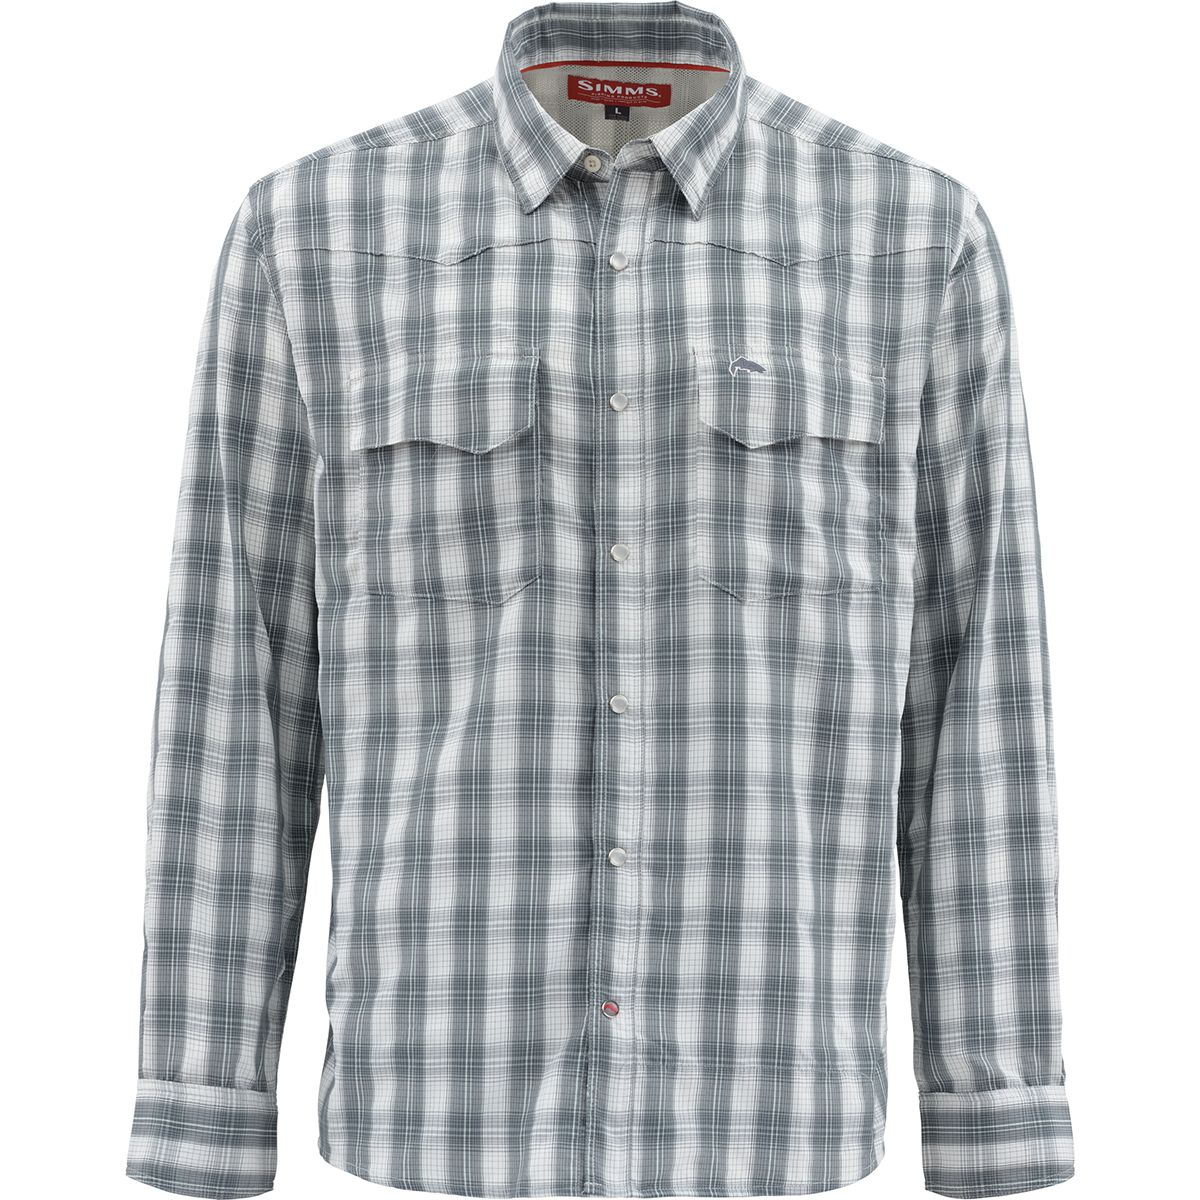 Simms Big Sky Long Sleeve Shirt CLOSEOUT Multiple Colors Available Fishing UPF